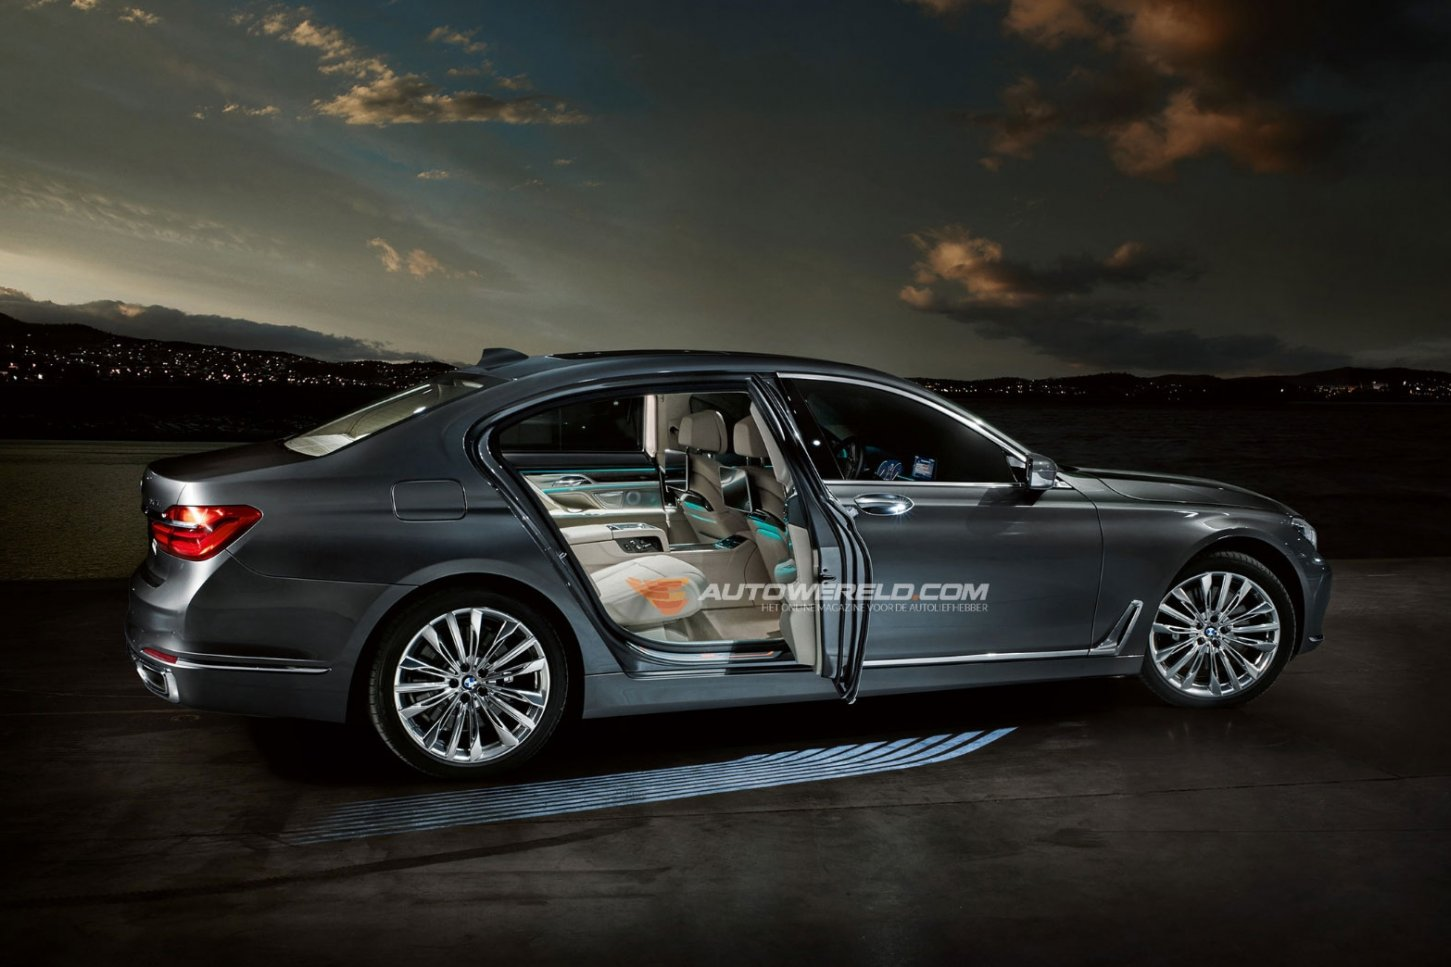 2016 bmw 7 series photos leak on the web carscoops. Black Bedroom Furniture Sets. Home Design Ideas